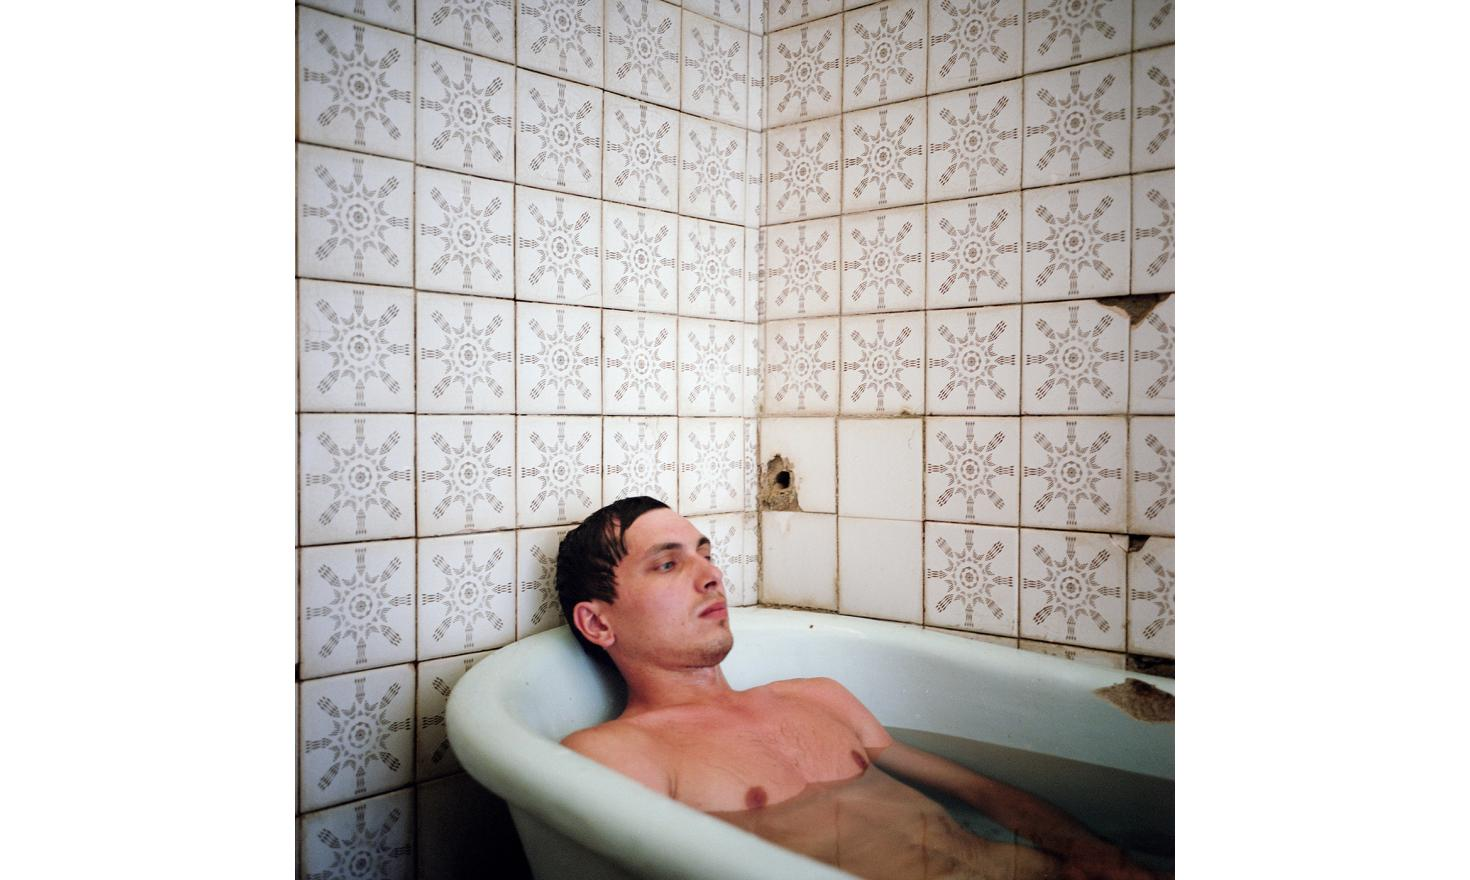 A Russian tourist takes a bath with sulfurous water in a sanitarium in Gagra.